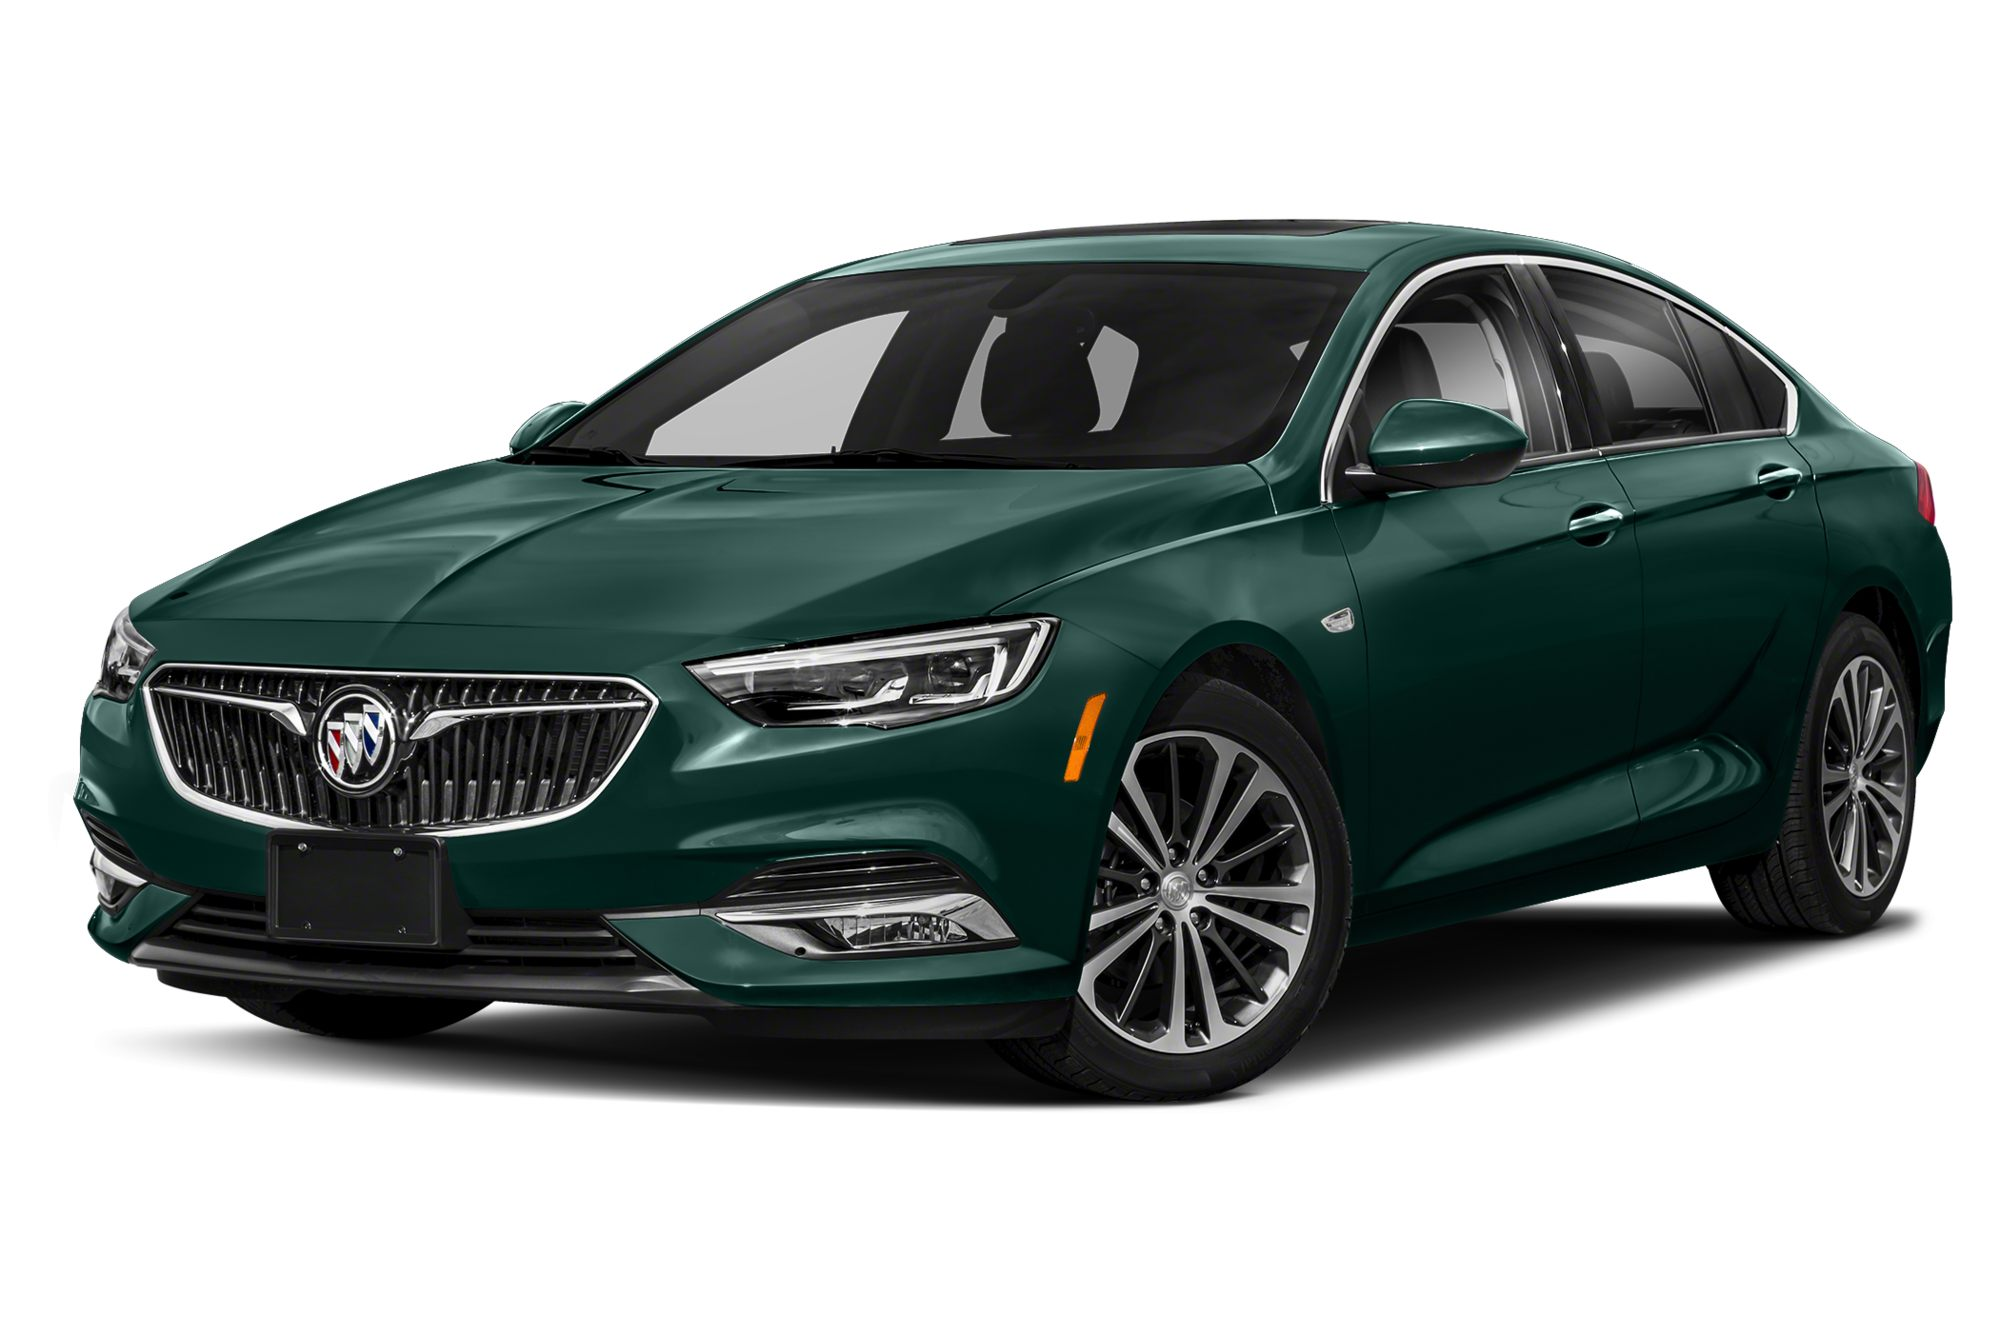 2019-2020 Buick Regal: Recall Alert